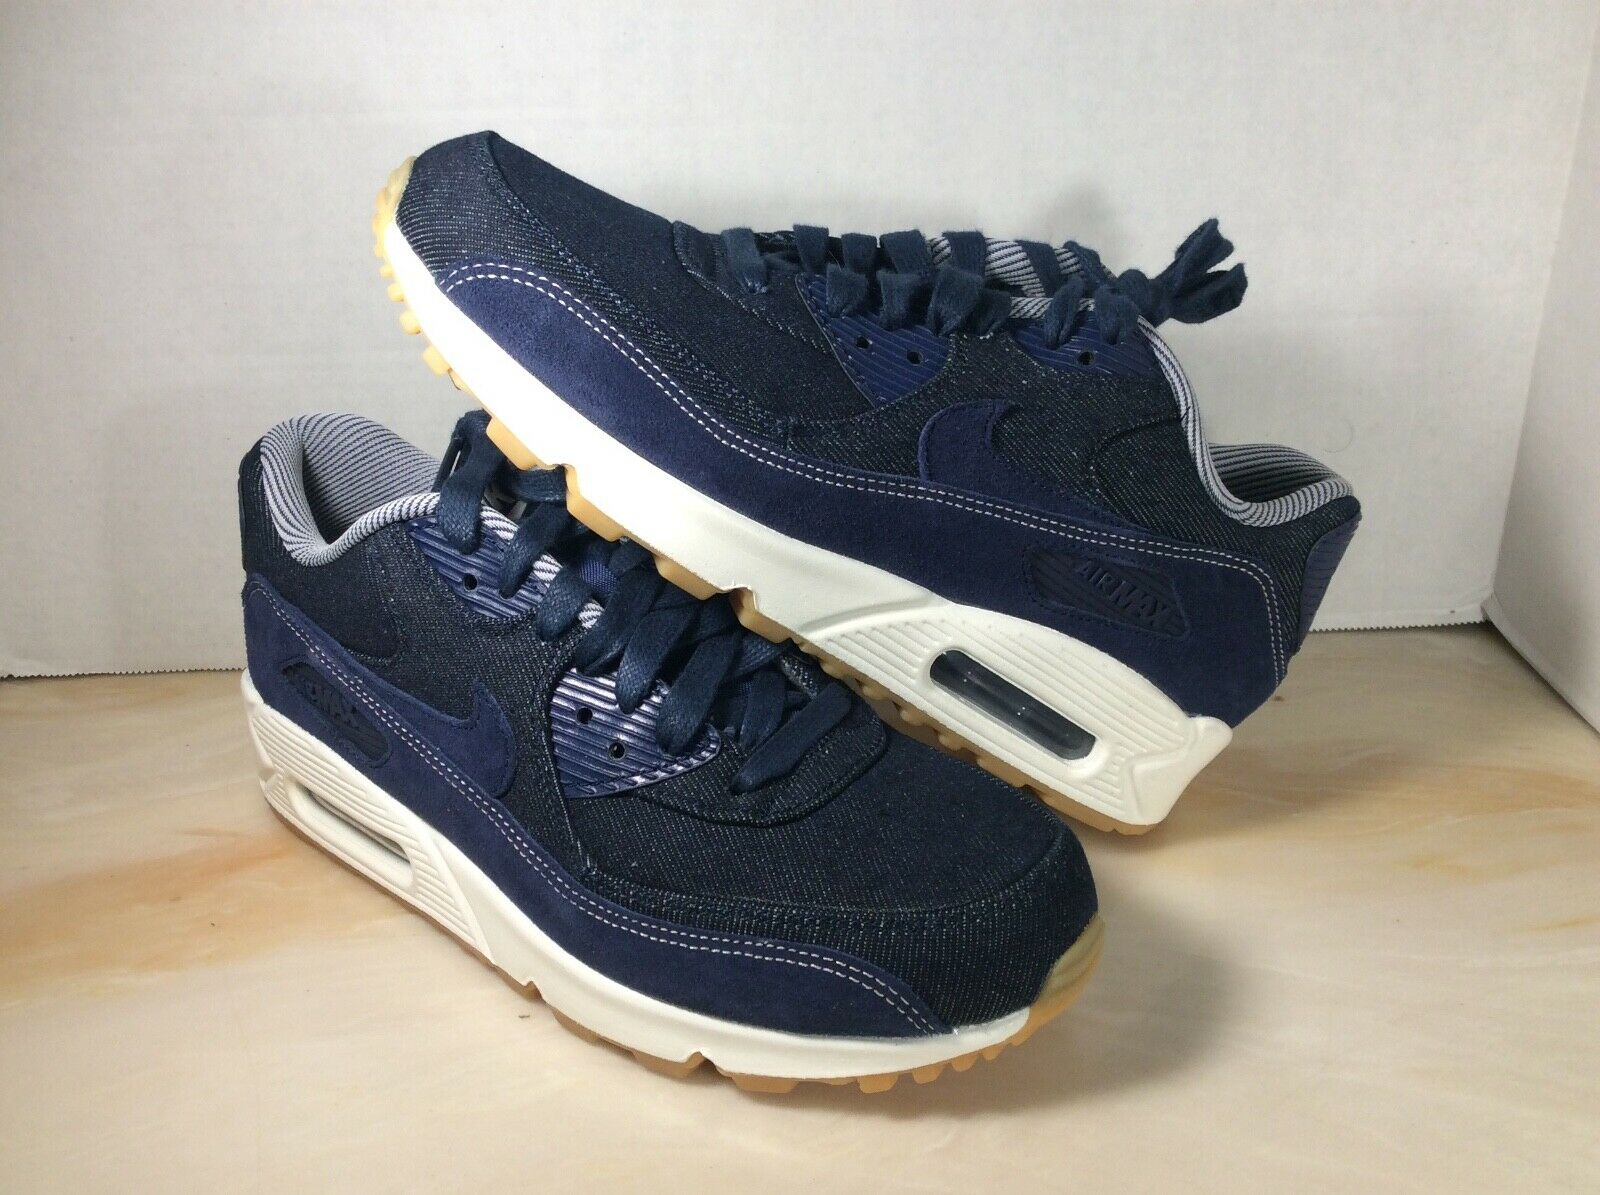 Nike Air Air Air Max 90 SE women's shoes size 7.5 denim bluee 891105-401 e83cb3